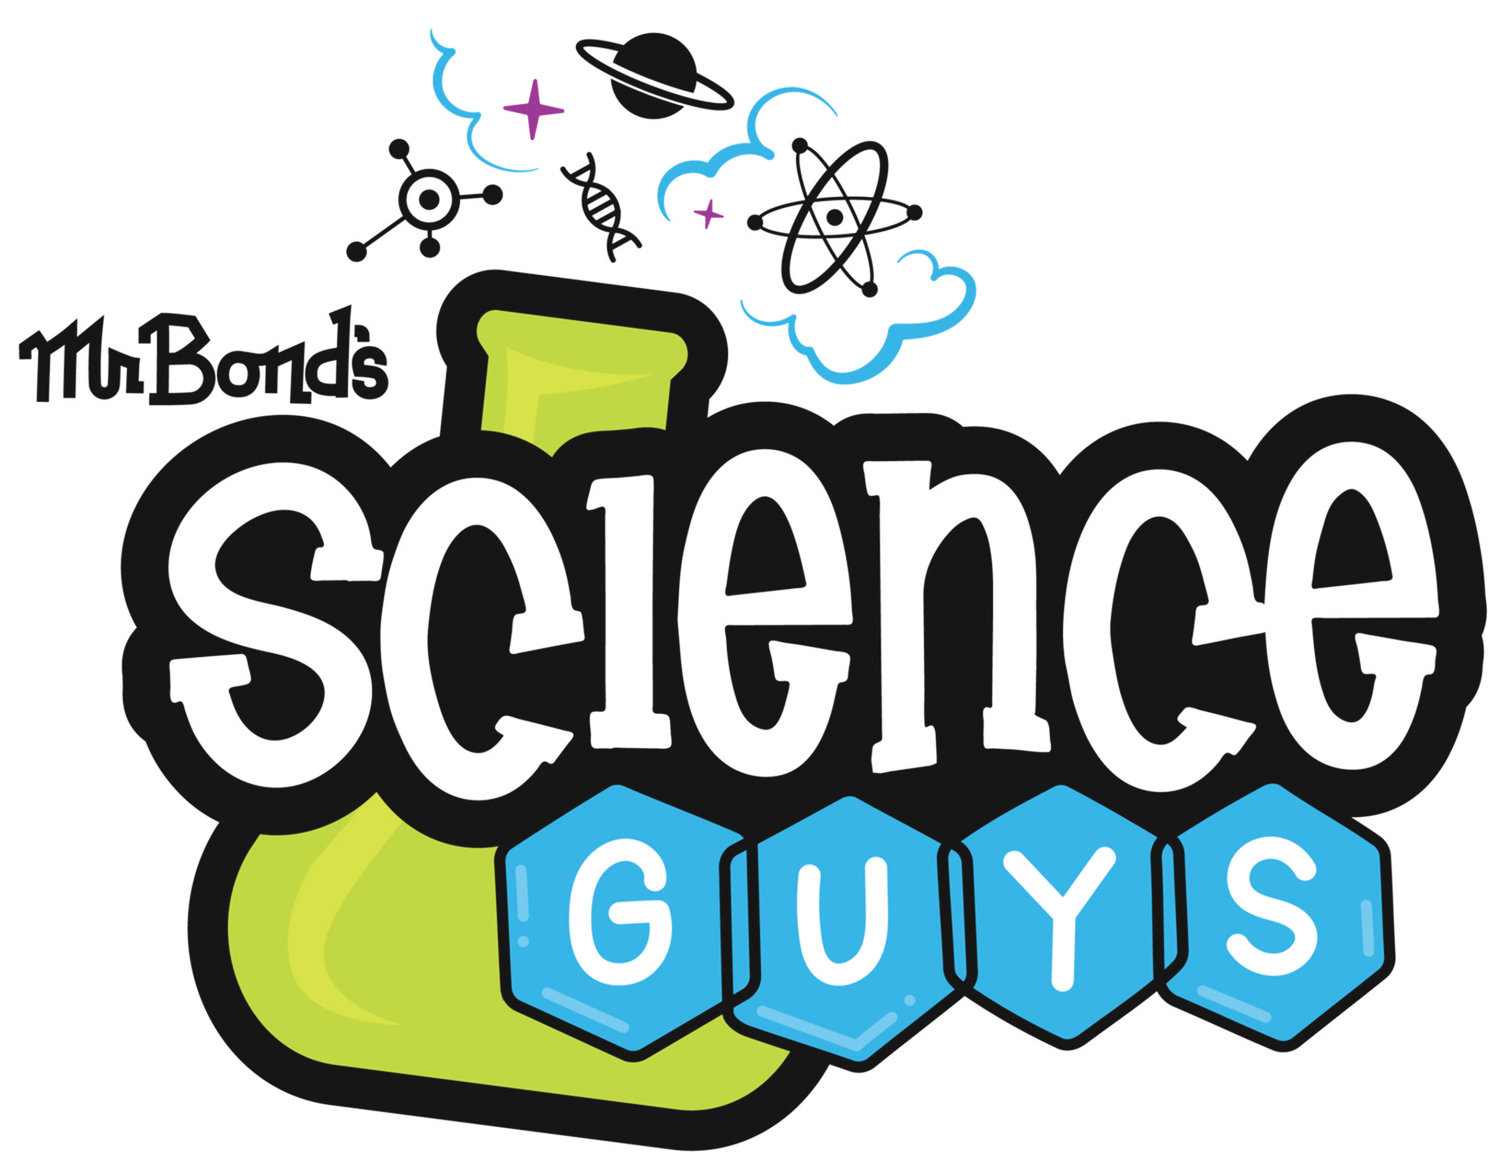 Mrs Parrington Loves Science: Love To Learn With Mr. Bond's Science Guys This June